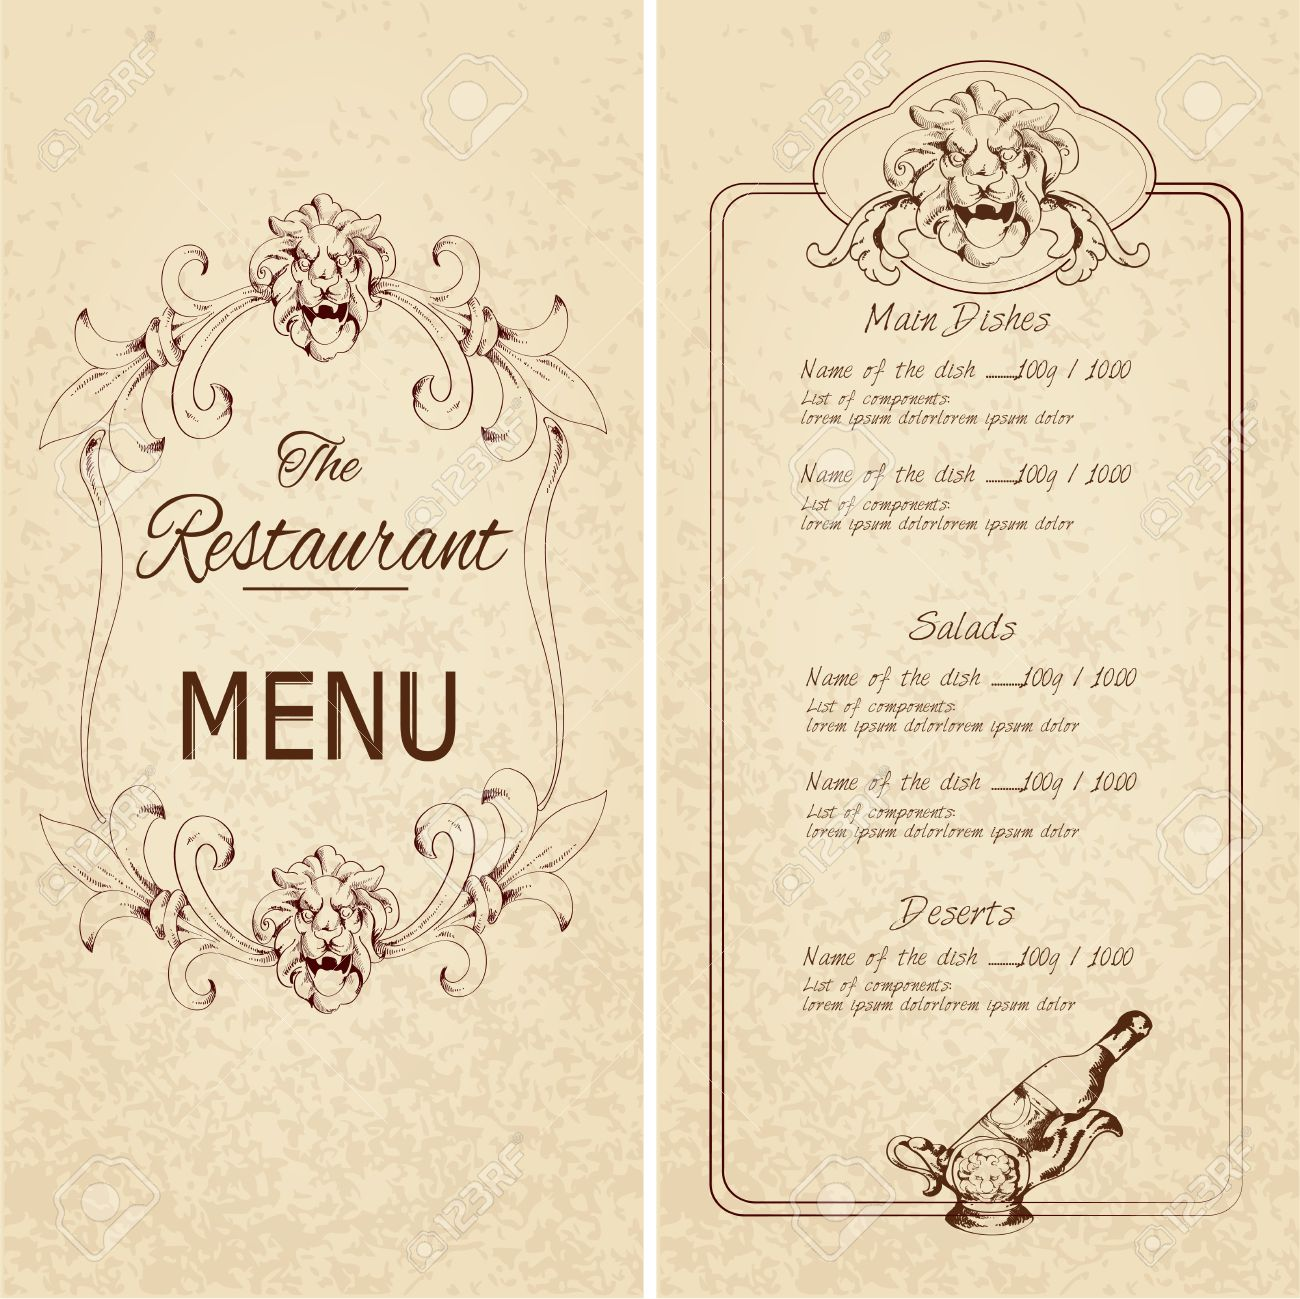 Design Templates Menu Sample Spa Menu Business Tracking Templates 27942333  Retro Vintage Restaurant Menu Template With